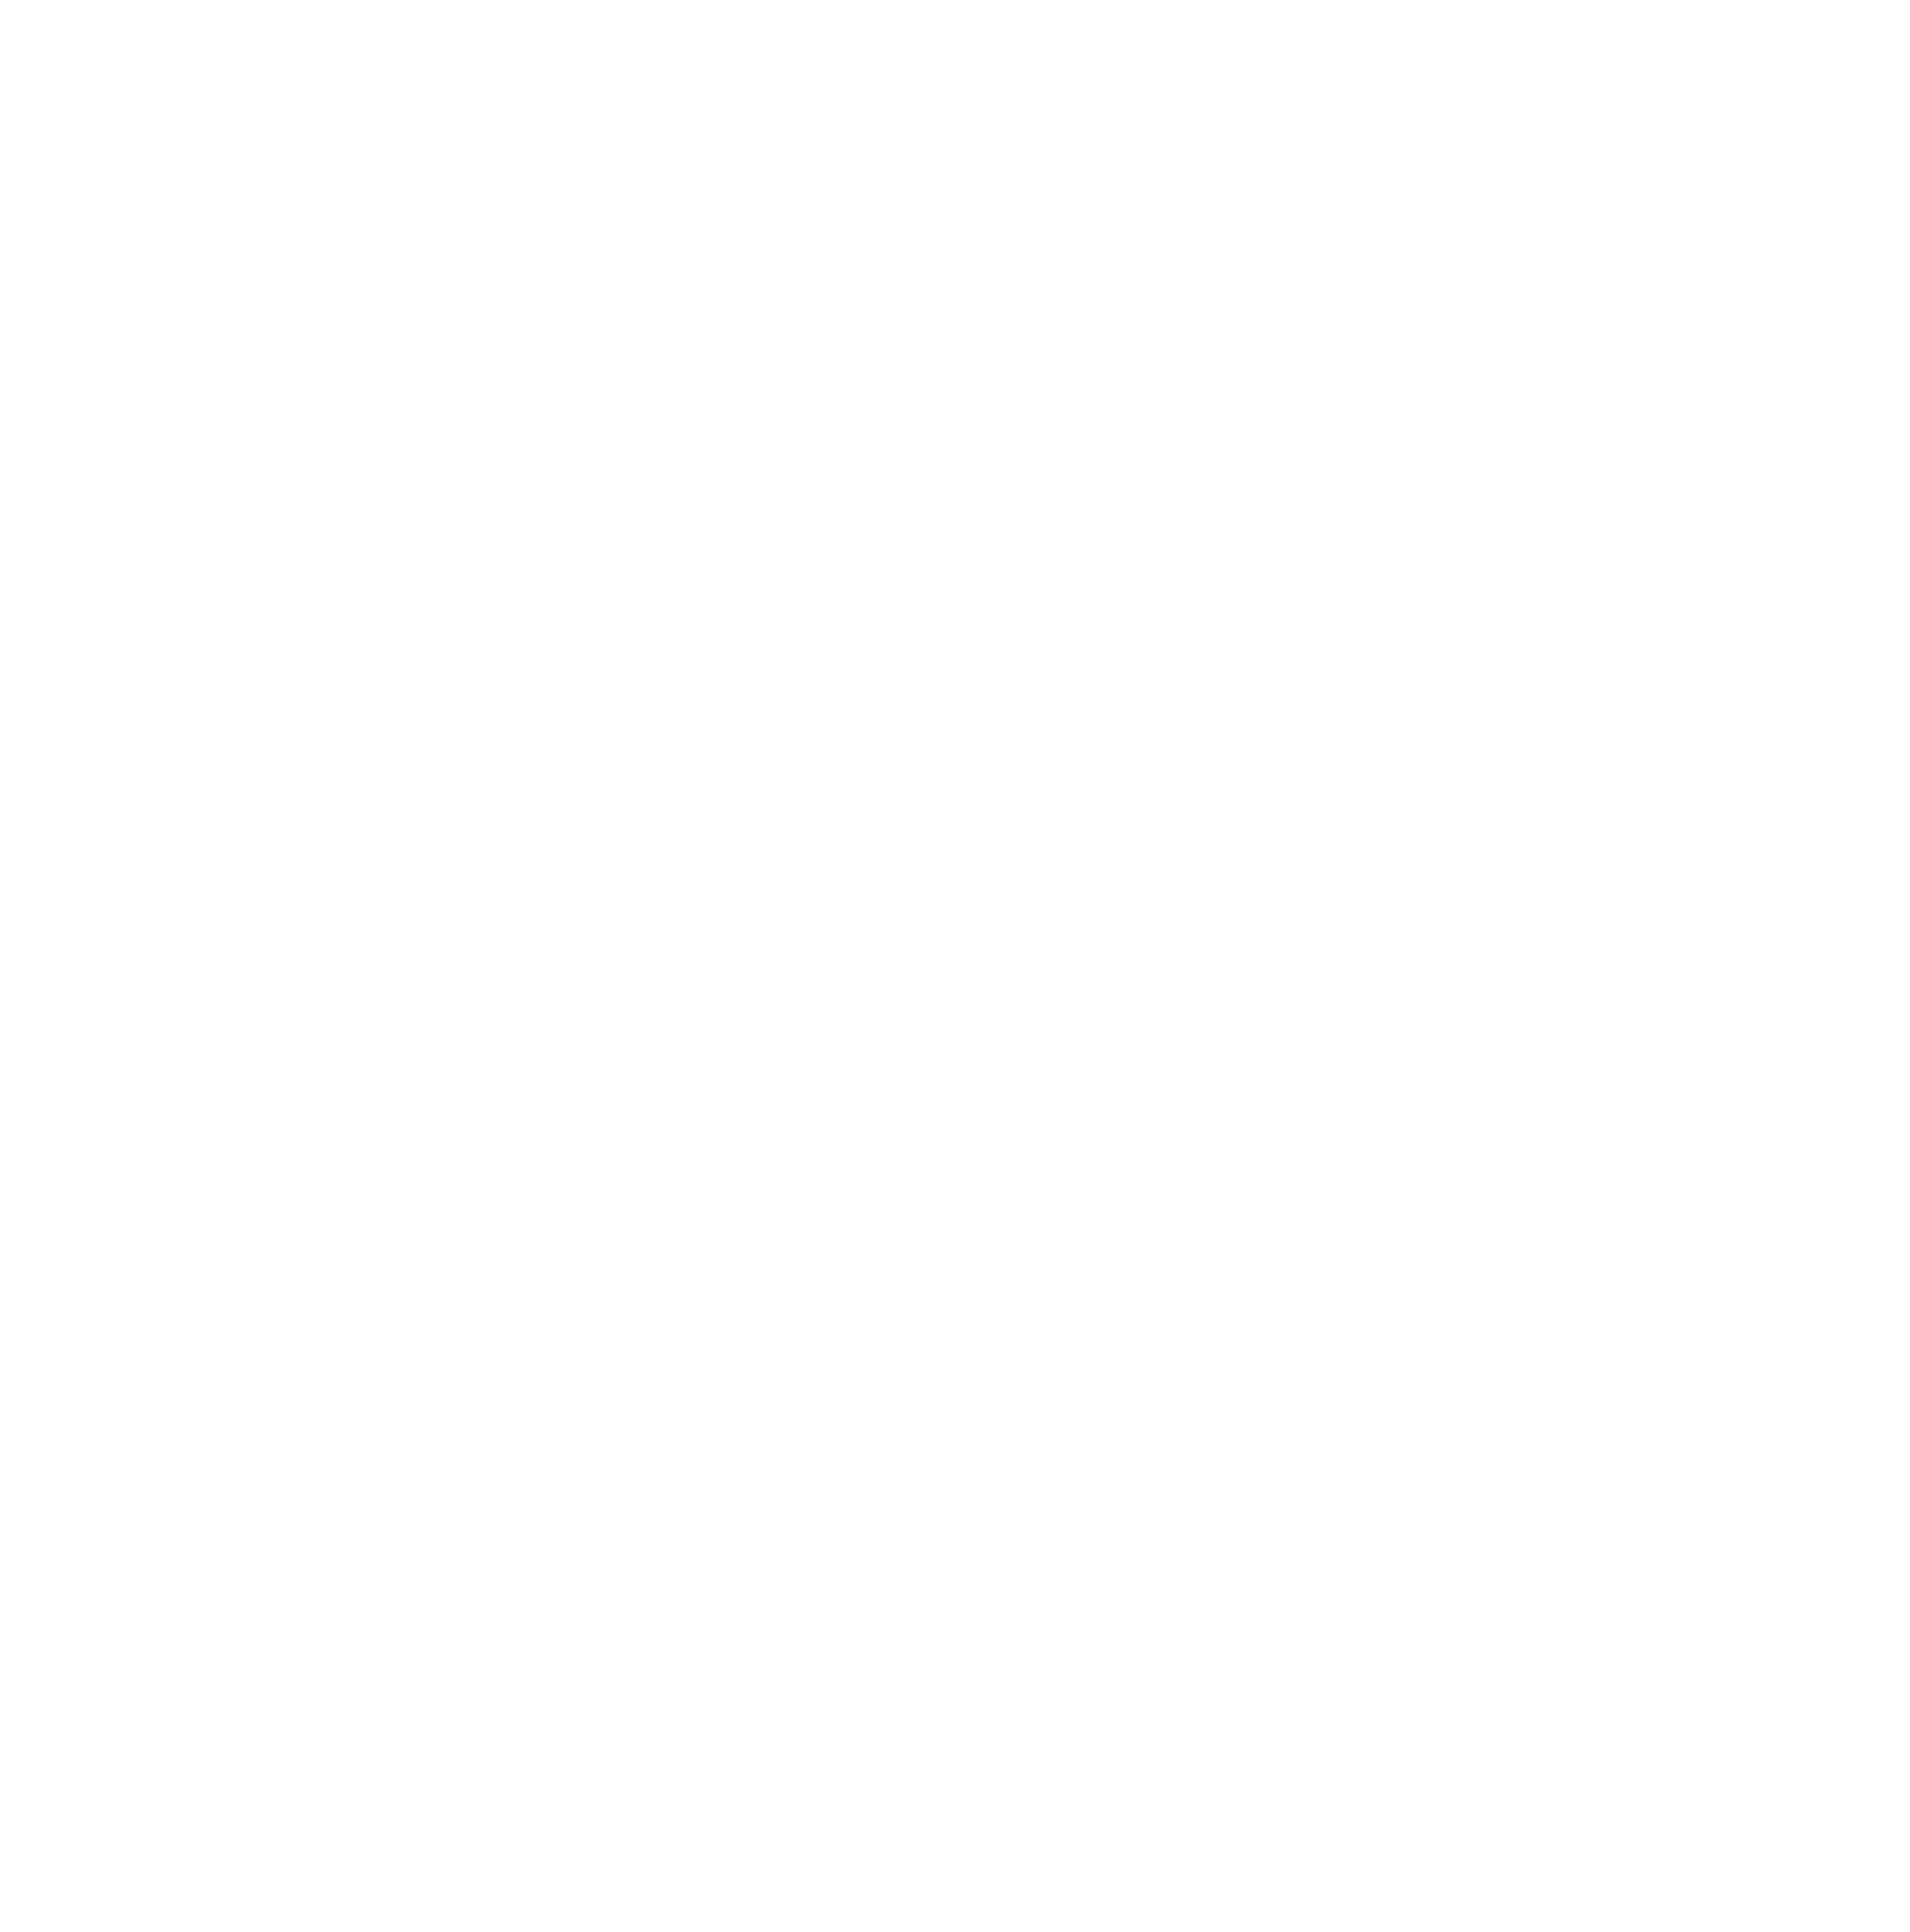 Cercle Saint Laurent